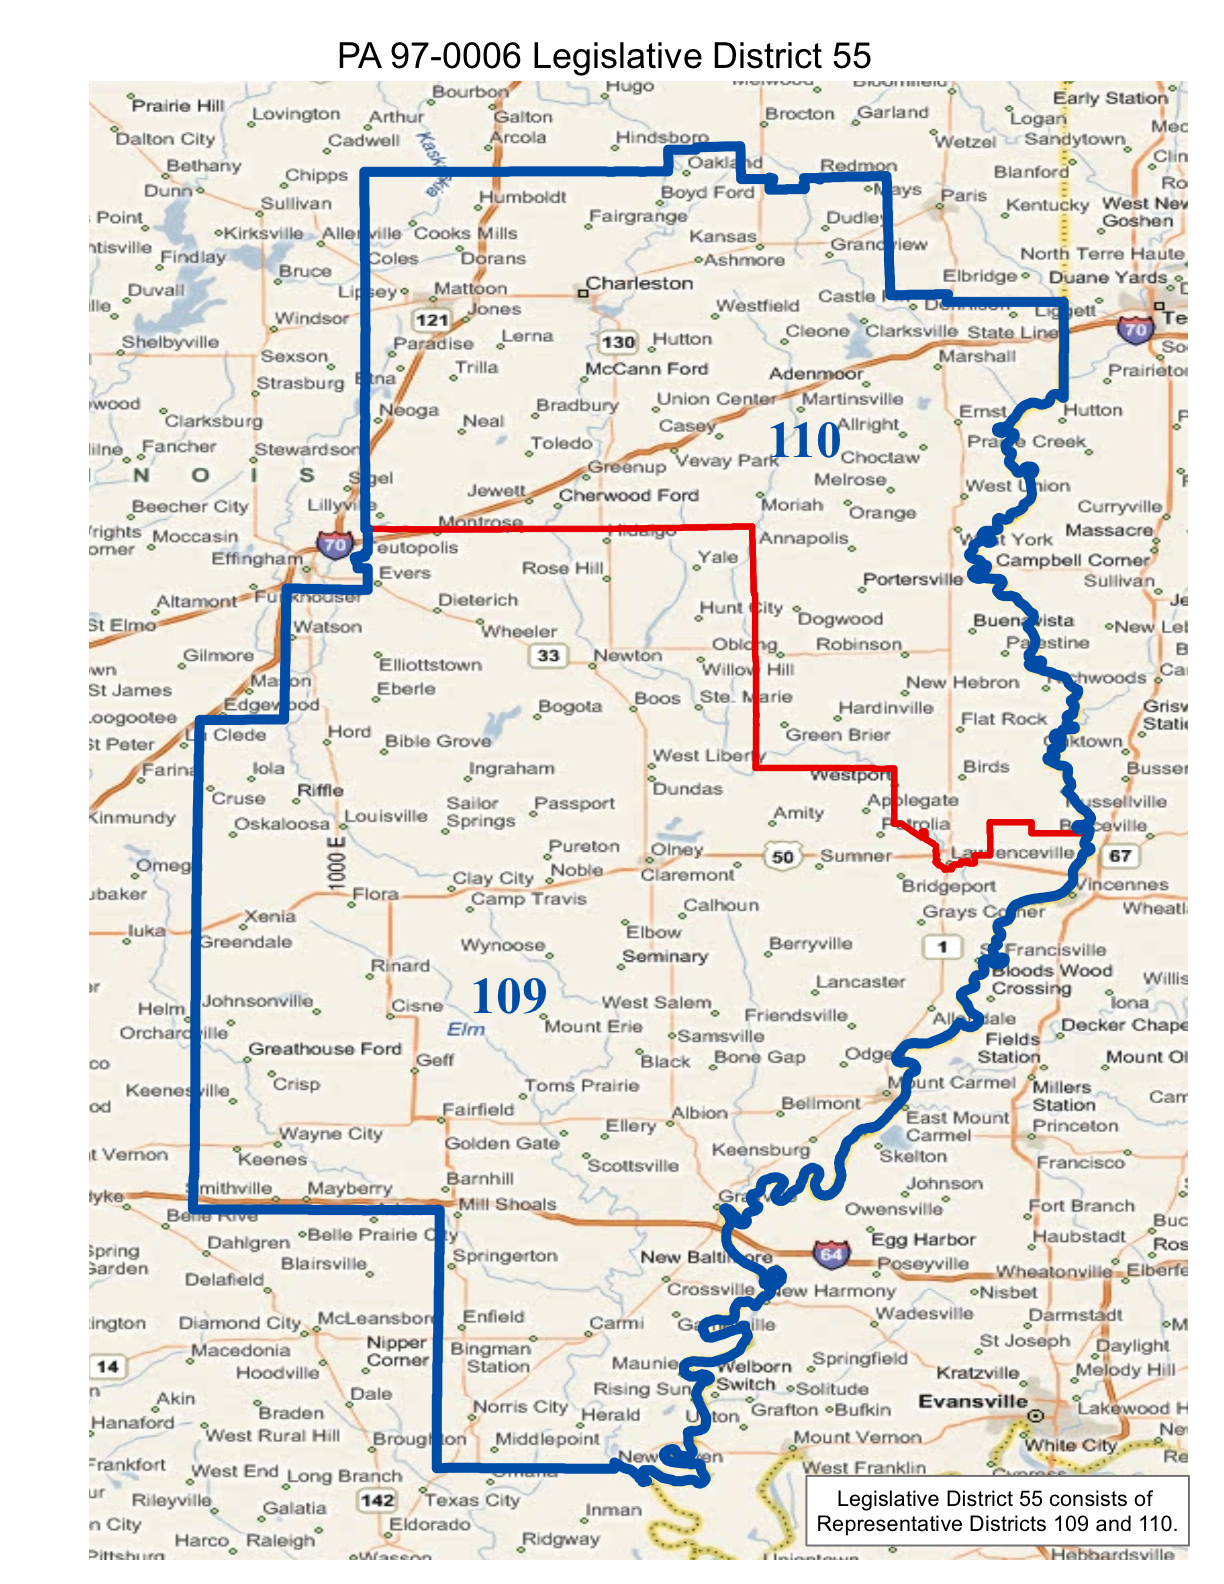 map of realigned illinois state senate district 55 and state representative districts 109 and 110